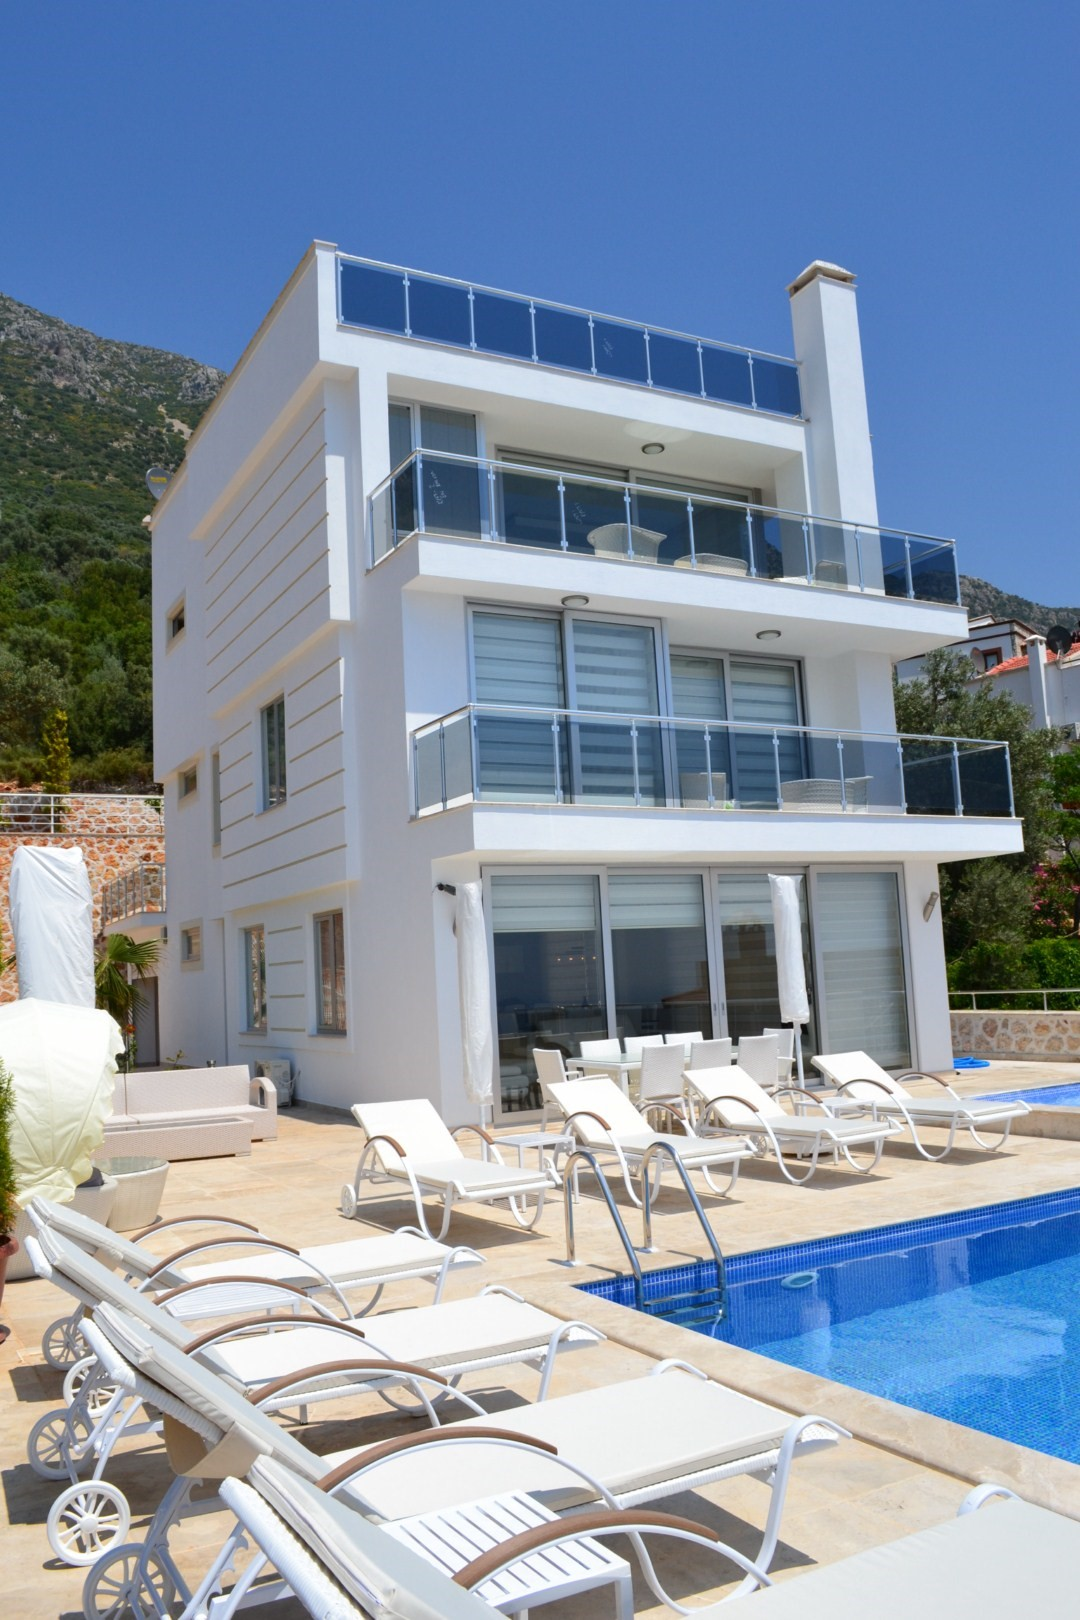 Villa Kizil is arranged over 3 floors and has 5 bedrooms